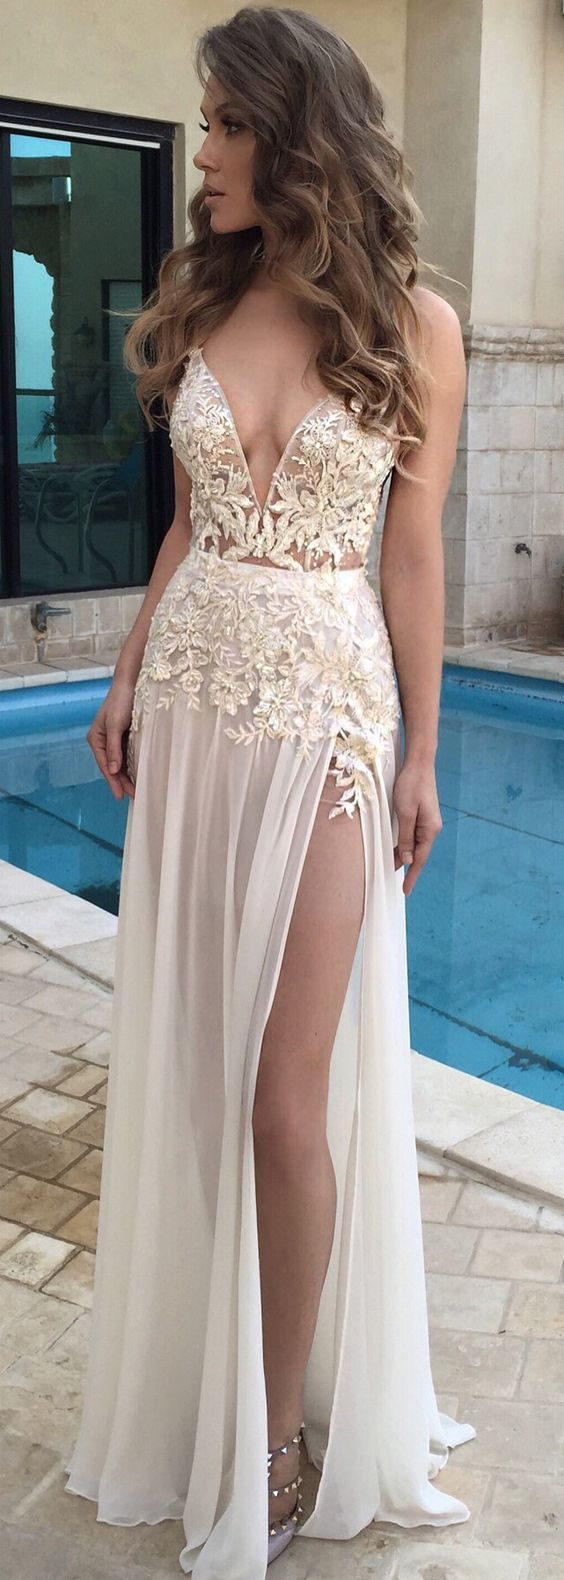 White prom dresseslace prom dresswhite prom gownprom gowns